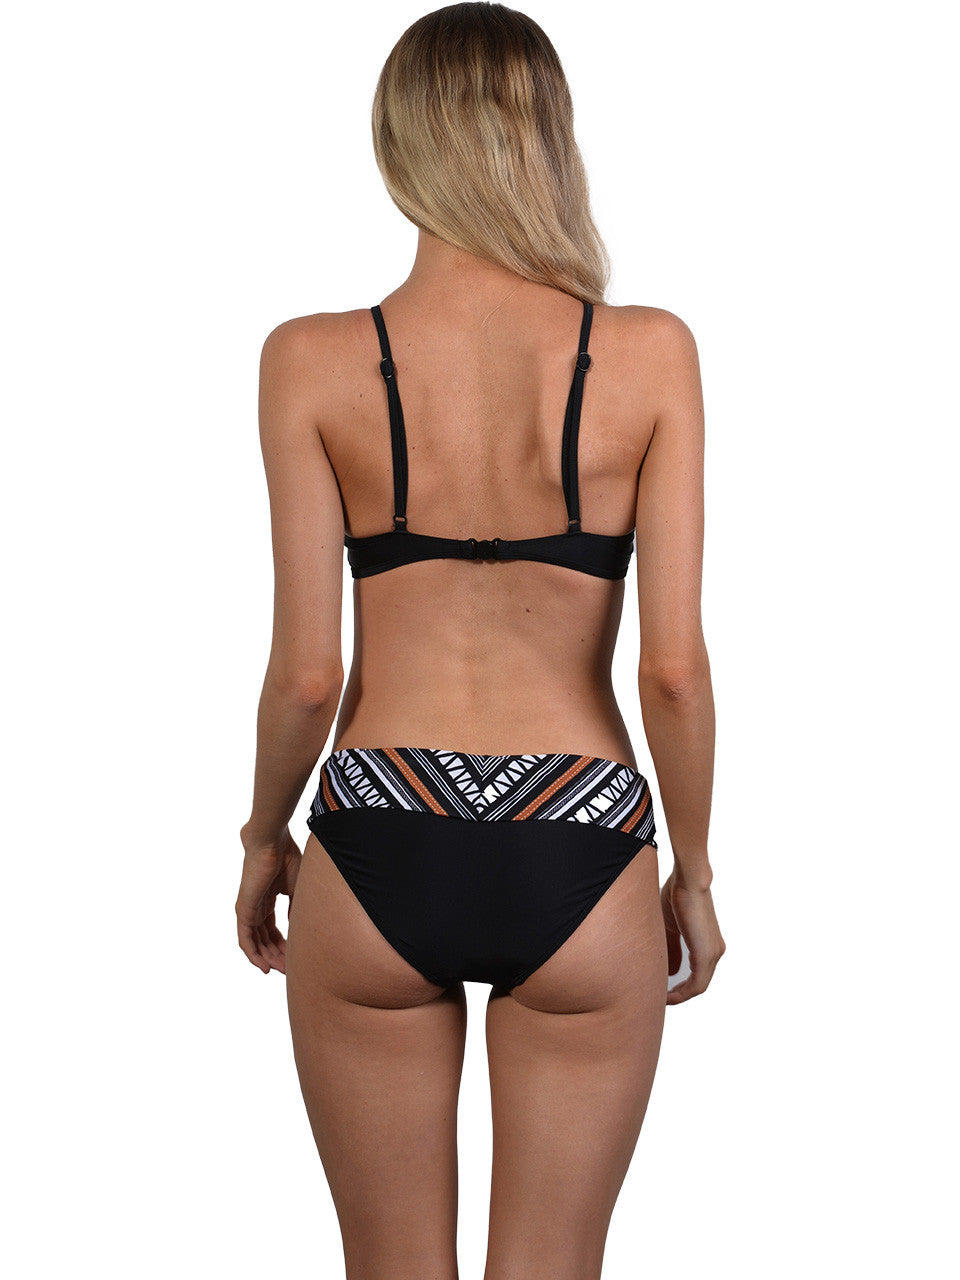 Back view of Zulu Band Bikini Pant